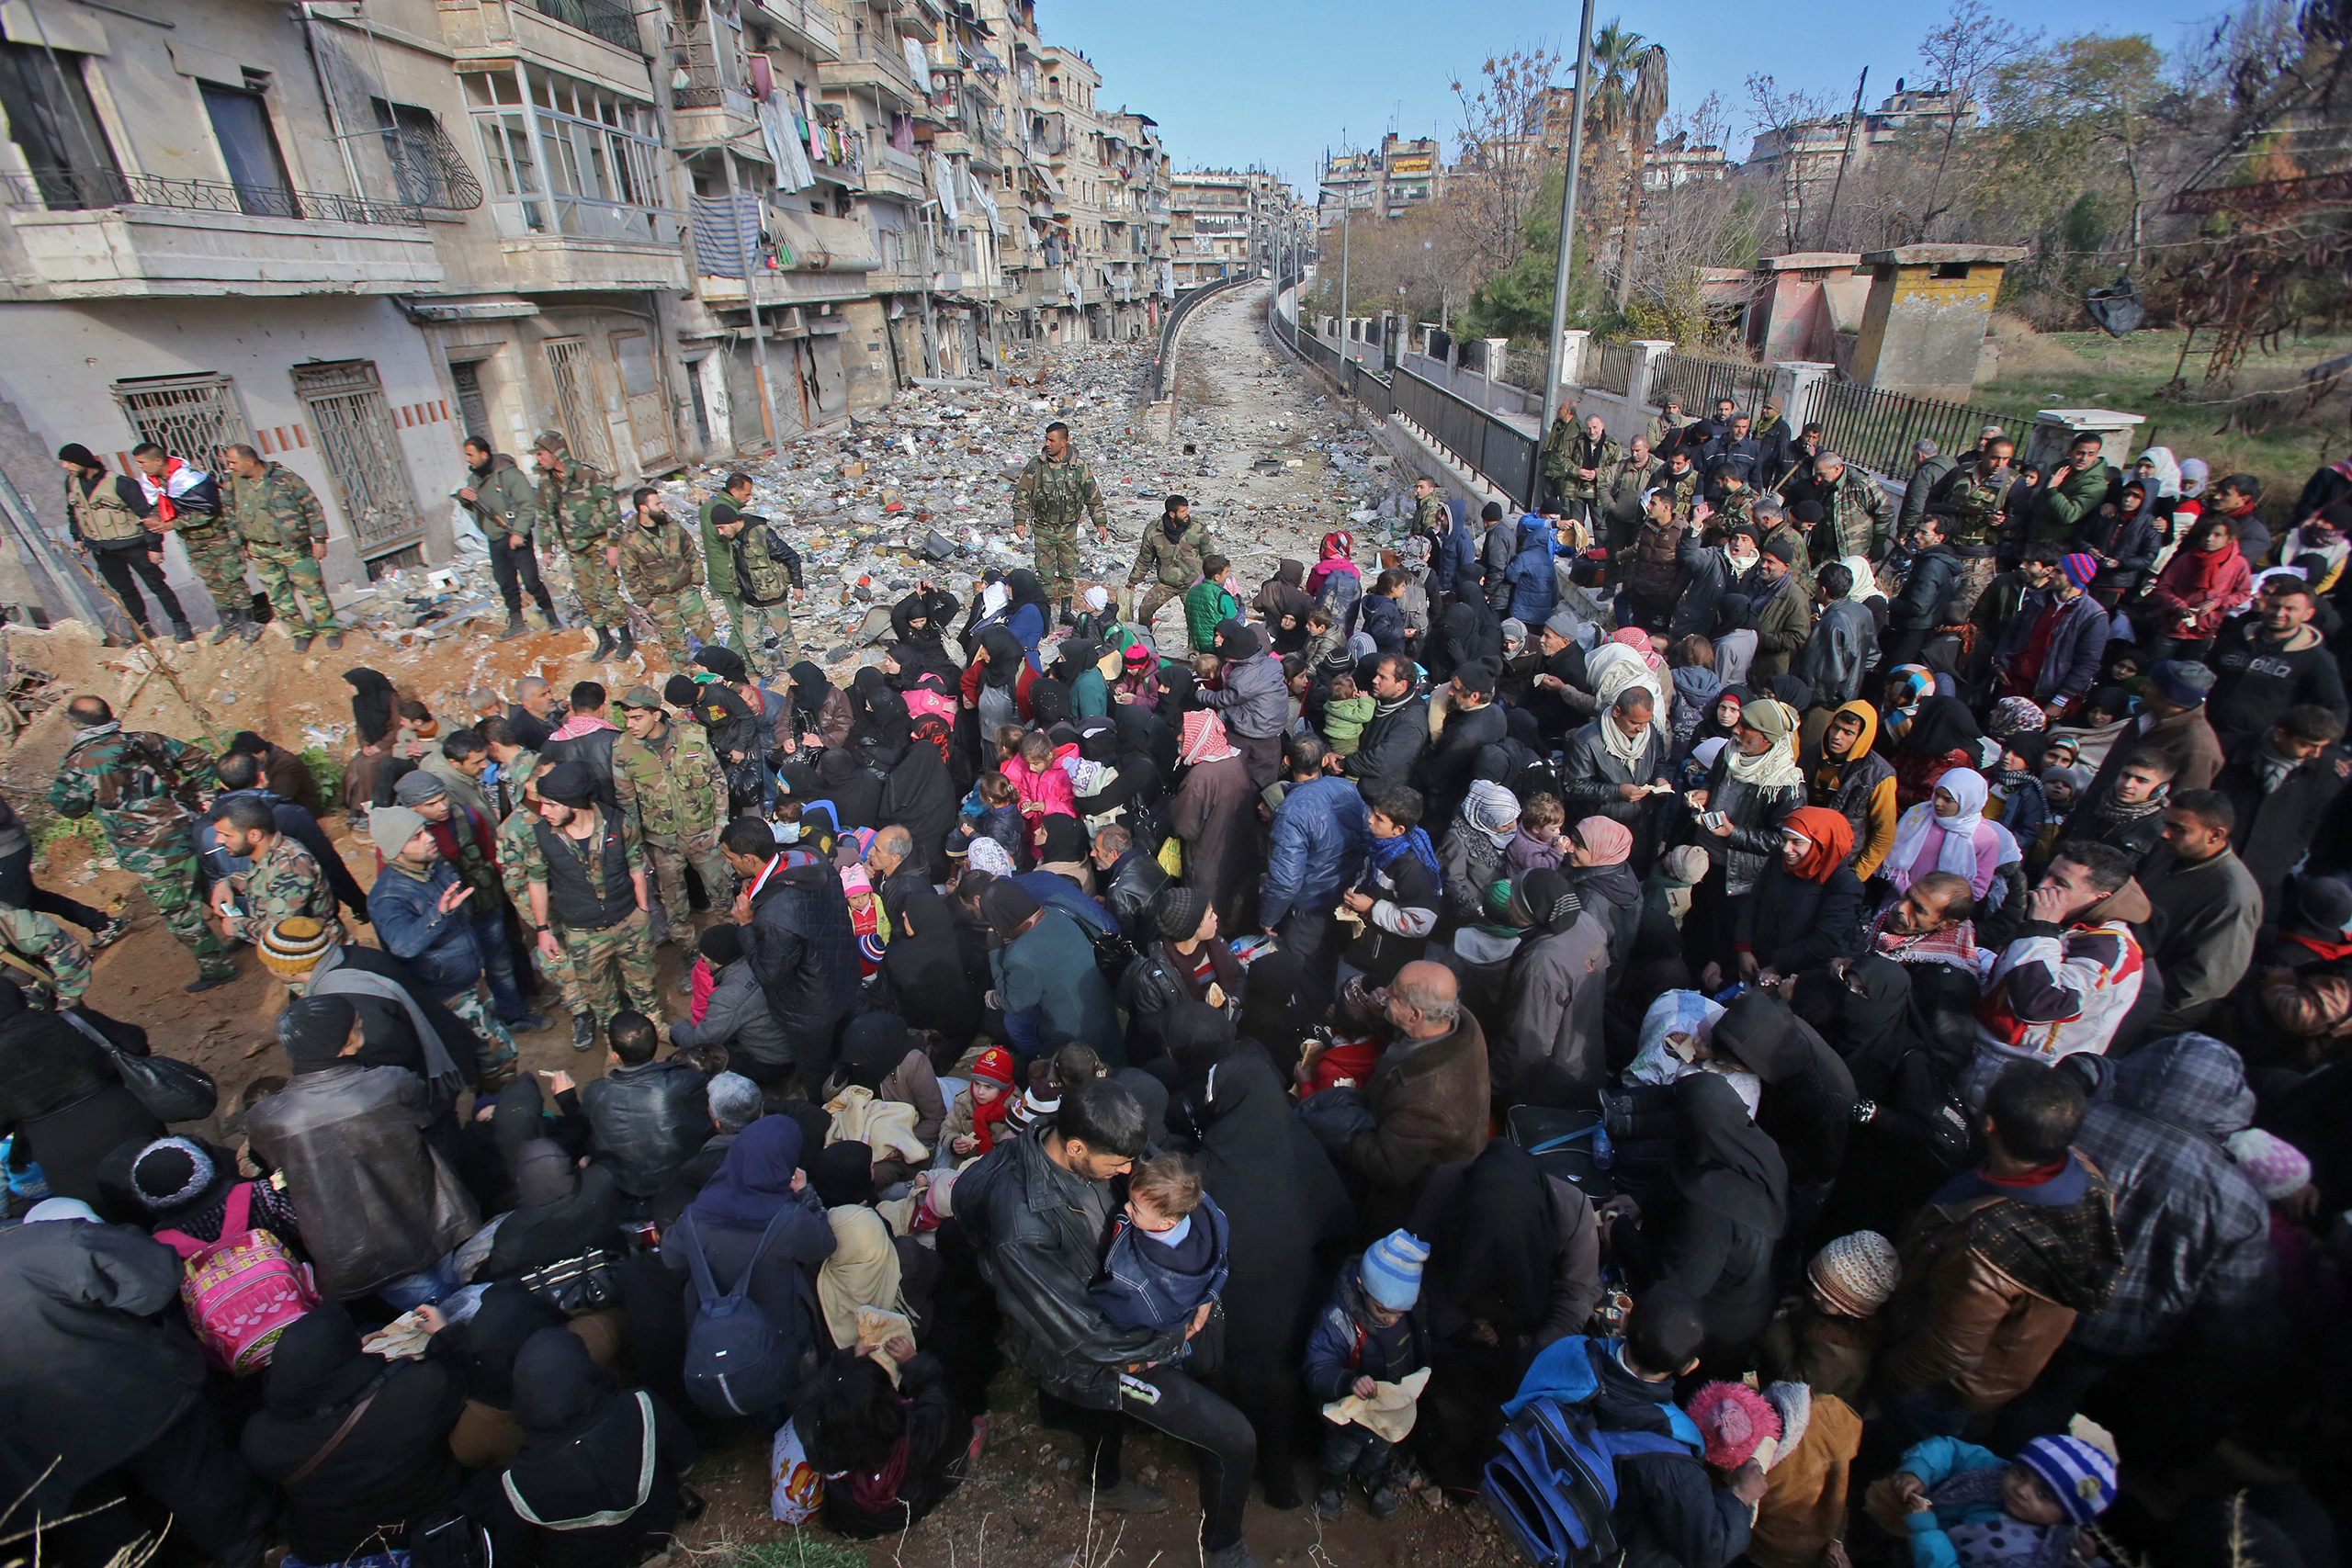 Residents fleeing the violence gather at a checkpoint, manned by pro-government forces, in the Maysaloun neighborhood of Aleppo on Dec. 8, 2016.